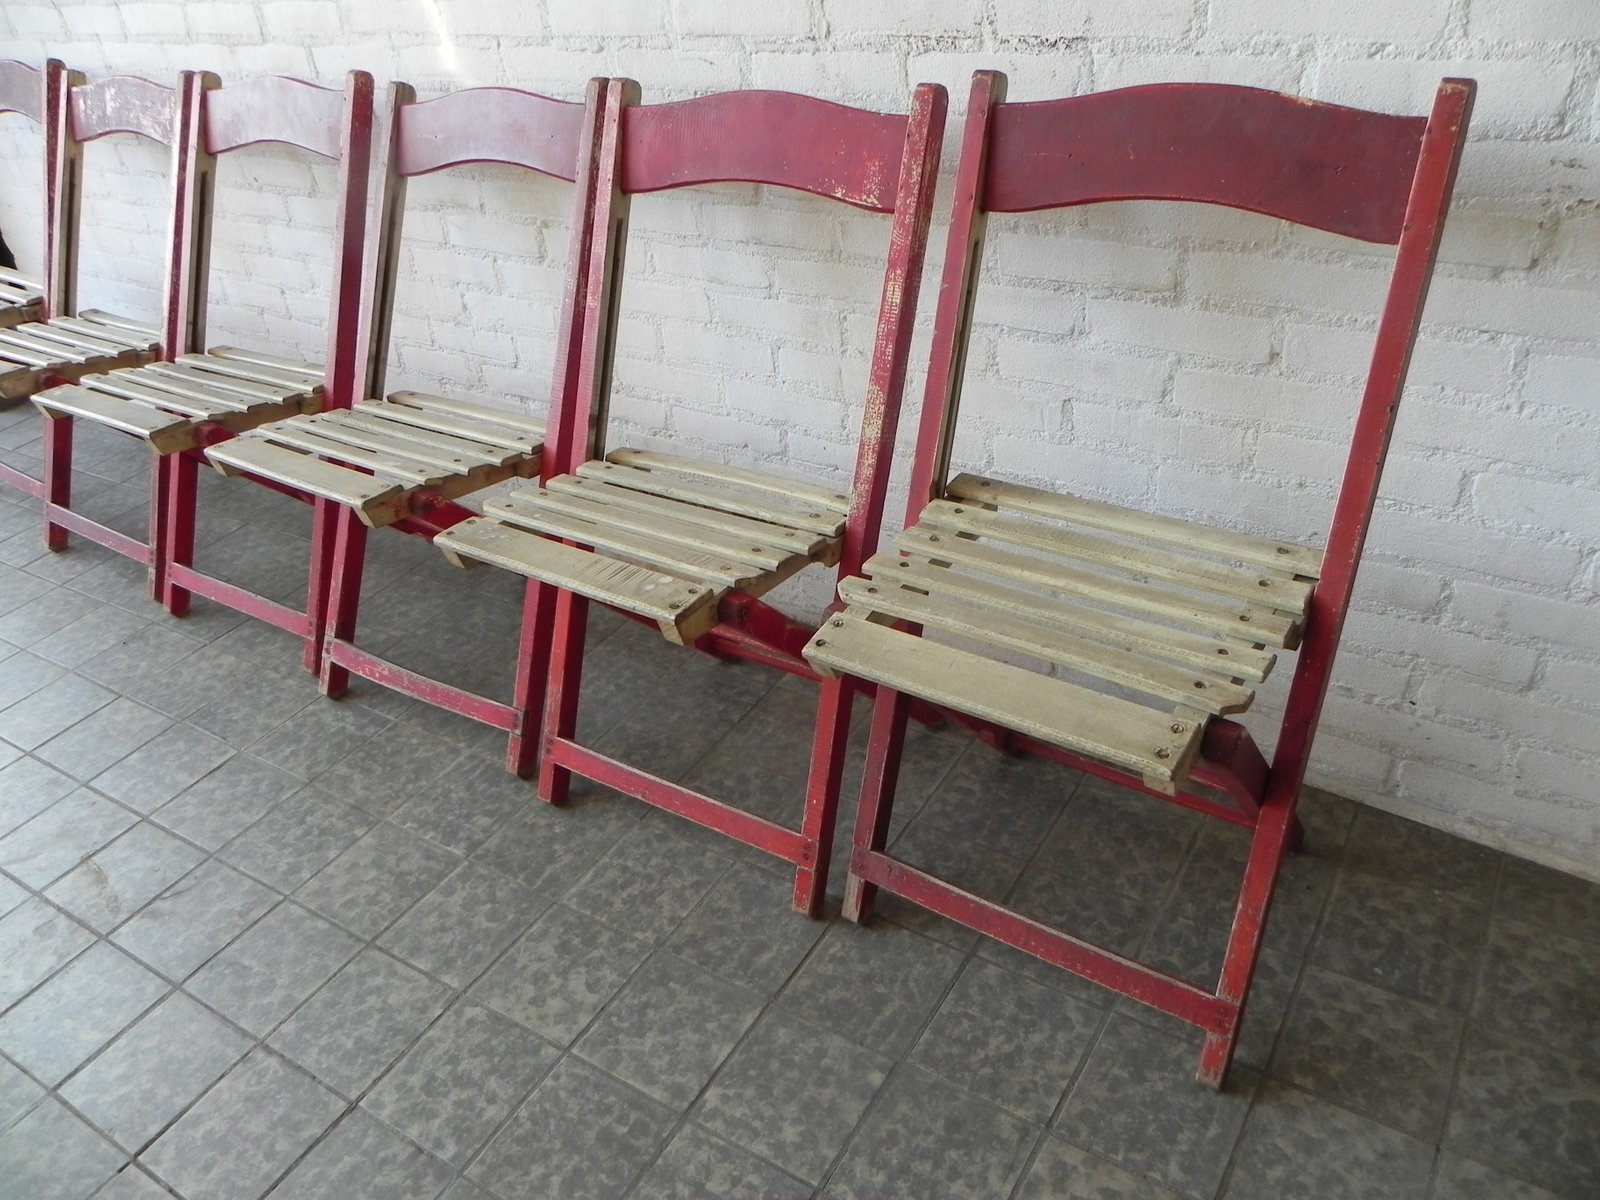 Where To Buy Folding Chairs Wooden Folding Chairs 1940s Set Of 6 For Sale At Pamono